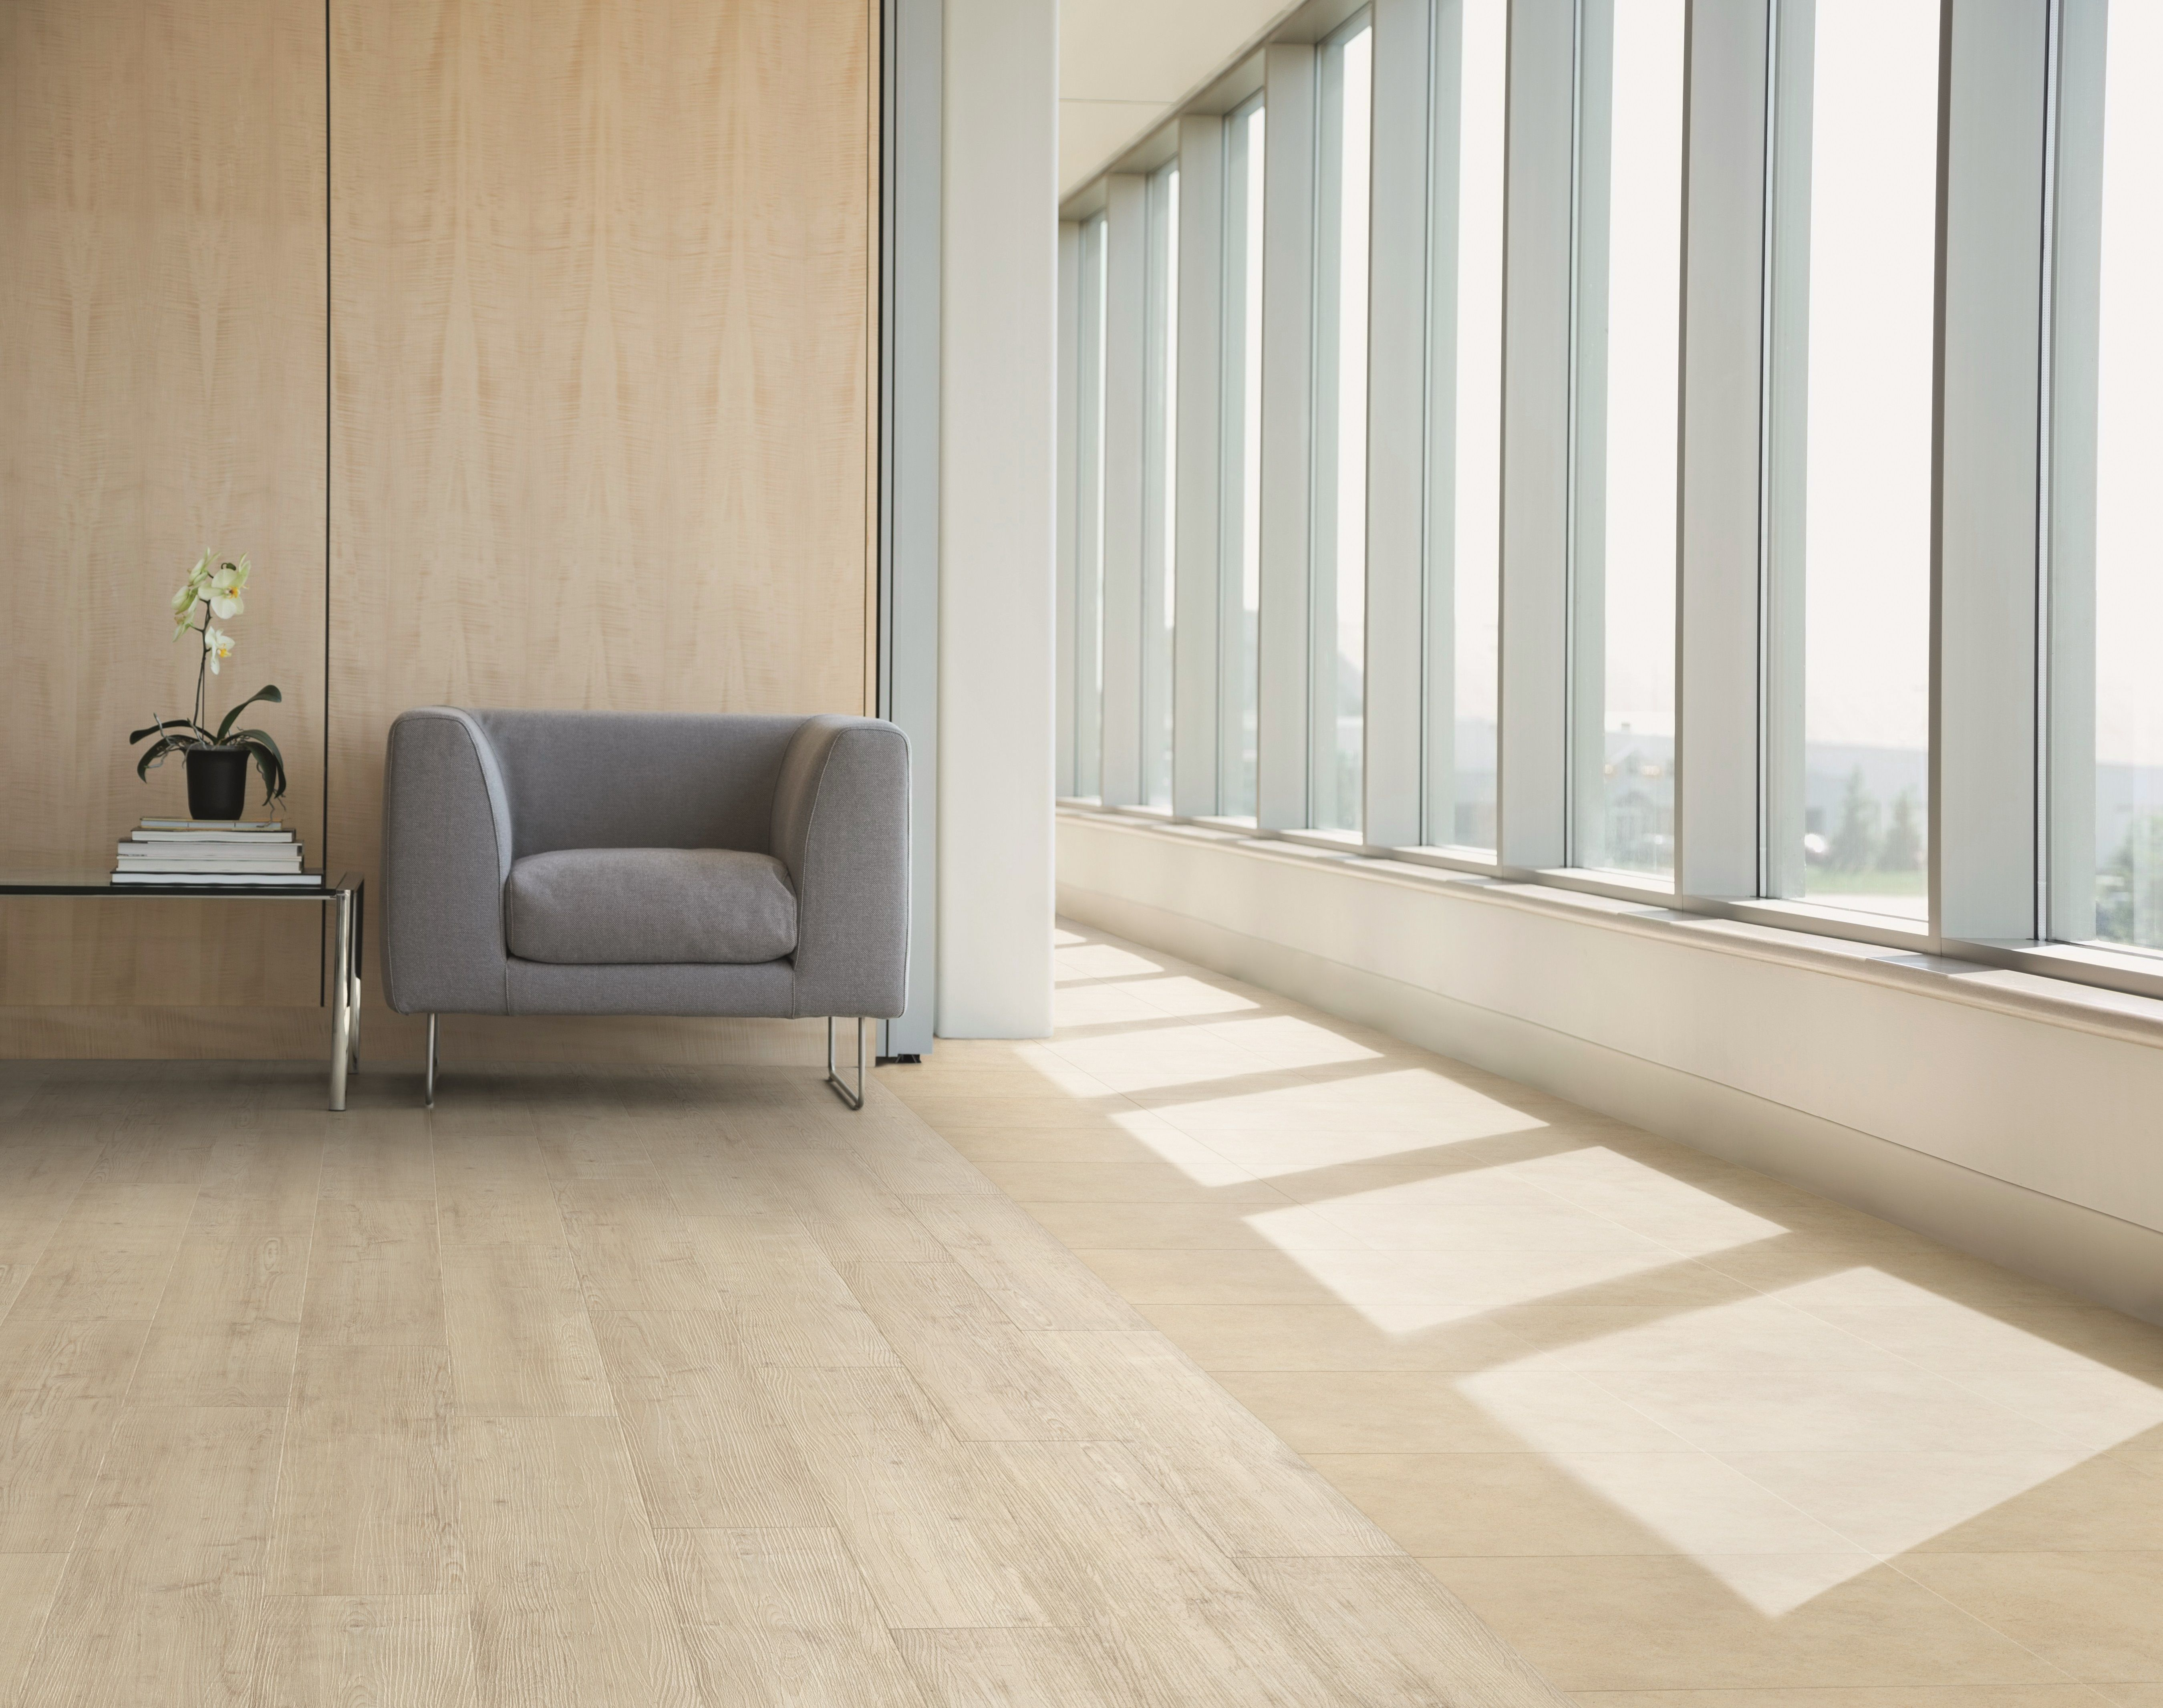 Fusion Flooring 1060 Royal White Oak Luxury Vinyl Tile Office Space Design Oak Planks